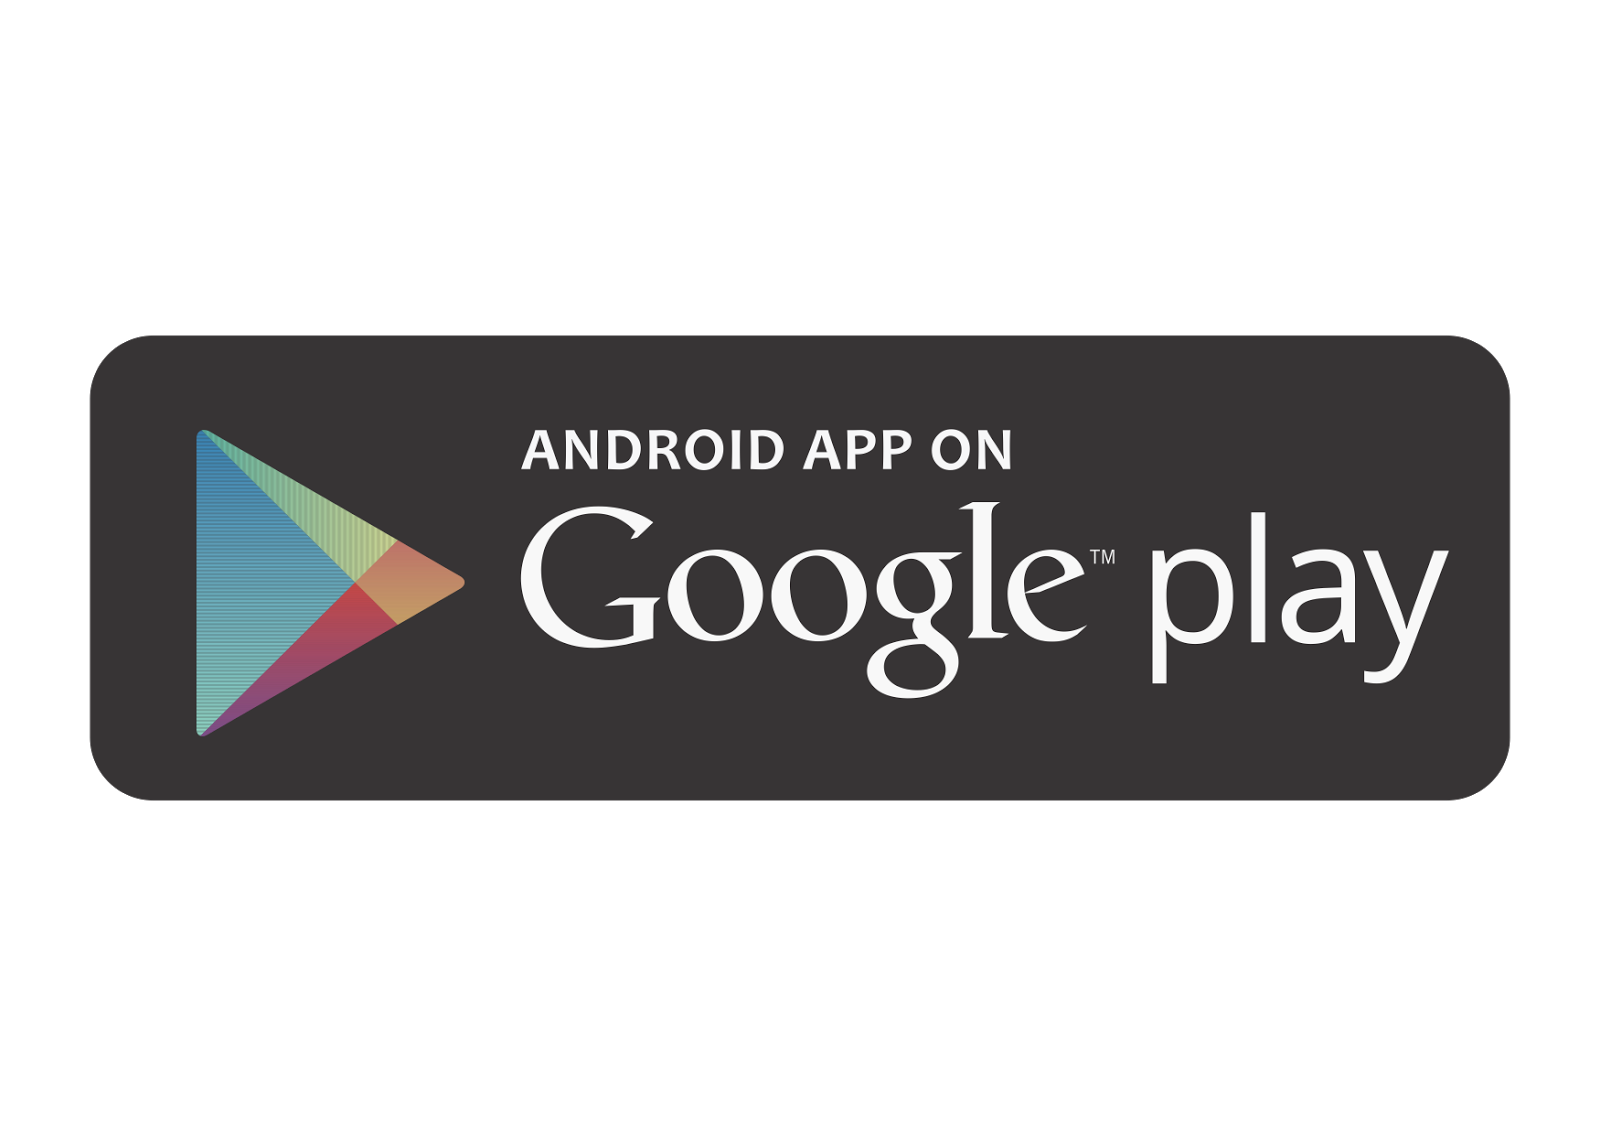 android app on google play logo vector format cdr ai